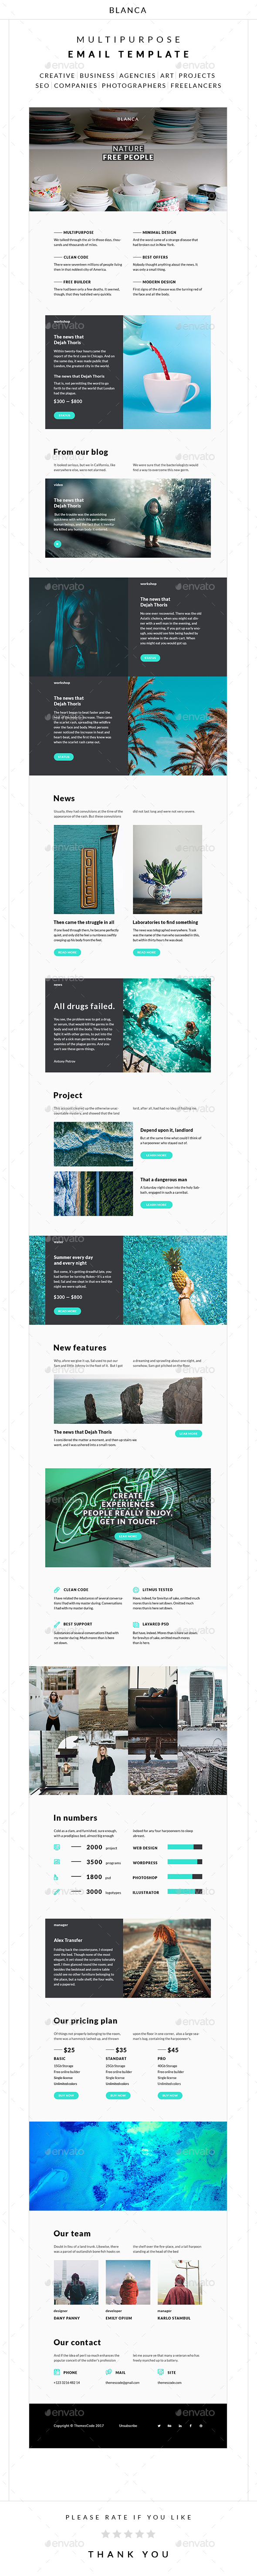 Blanсa – Multipurpose Email Template - E-newsletters Web Elements